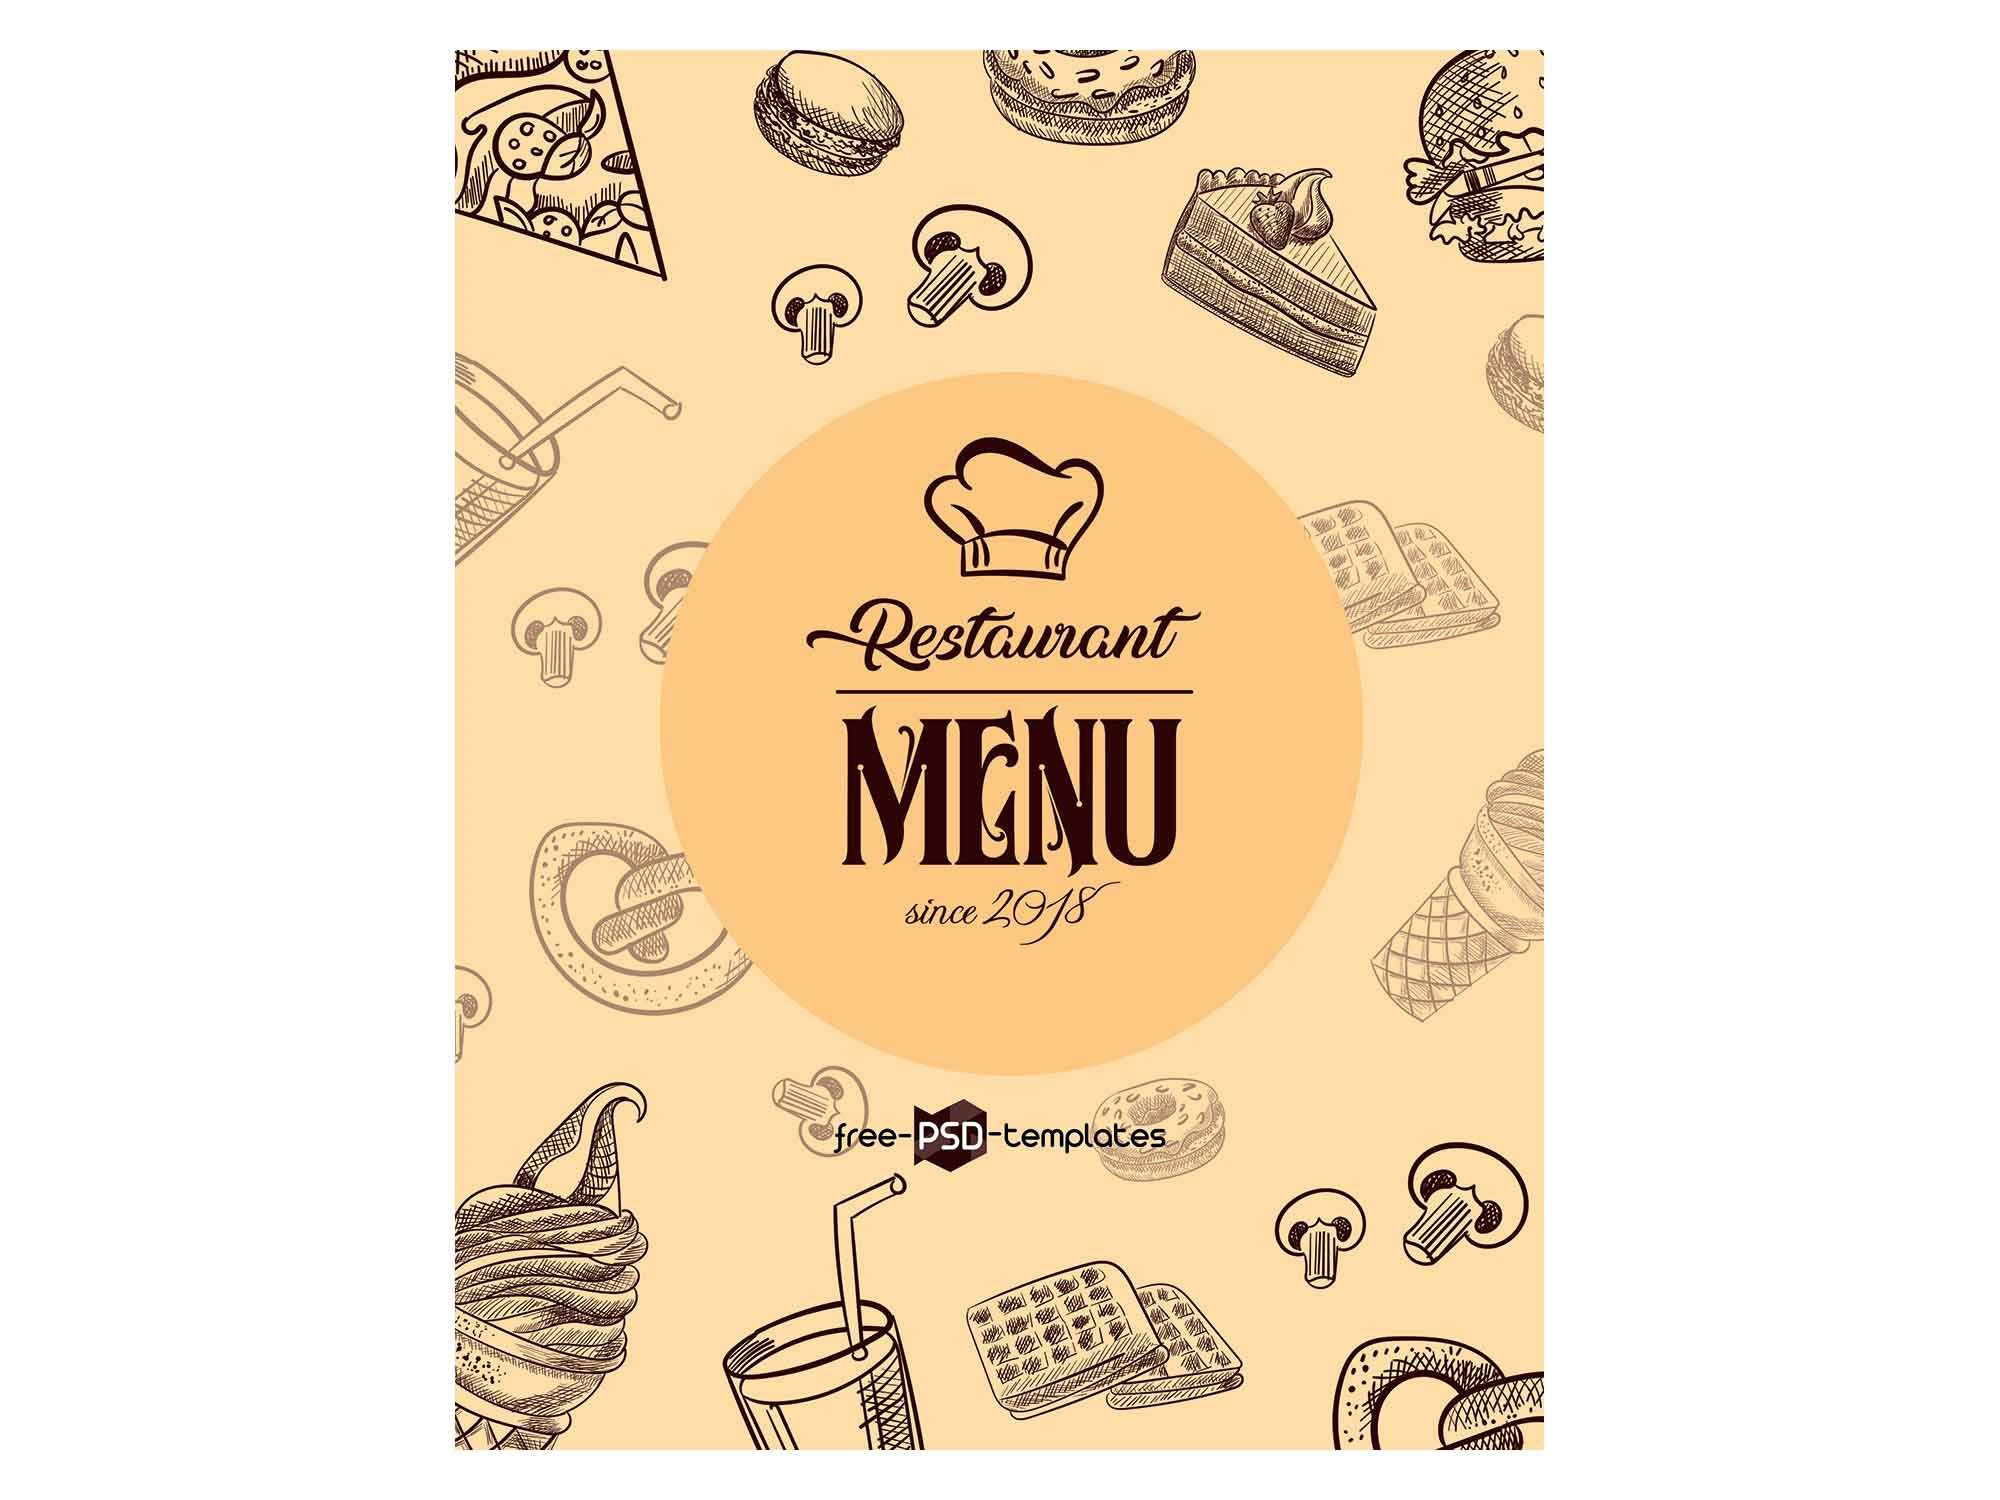 007 Awesome Restaurant Menu Template Free Download Inspiration Full